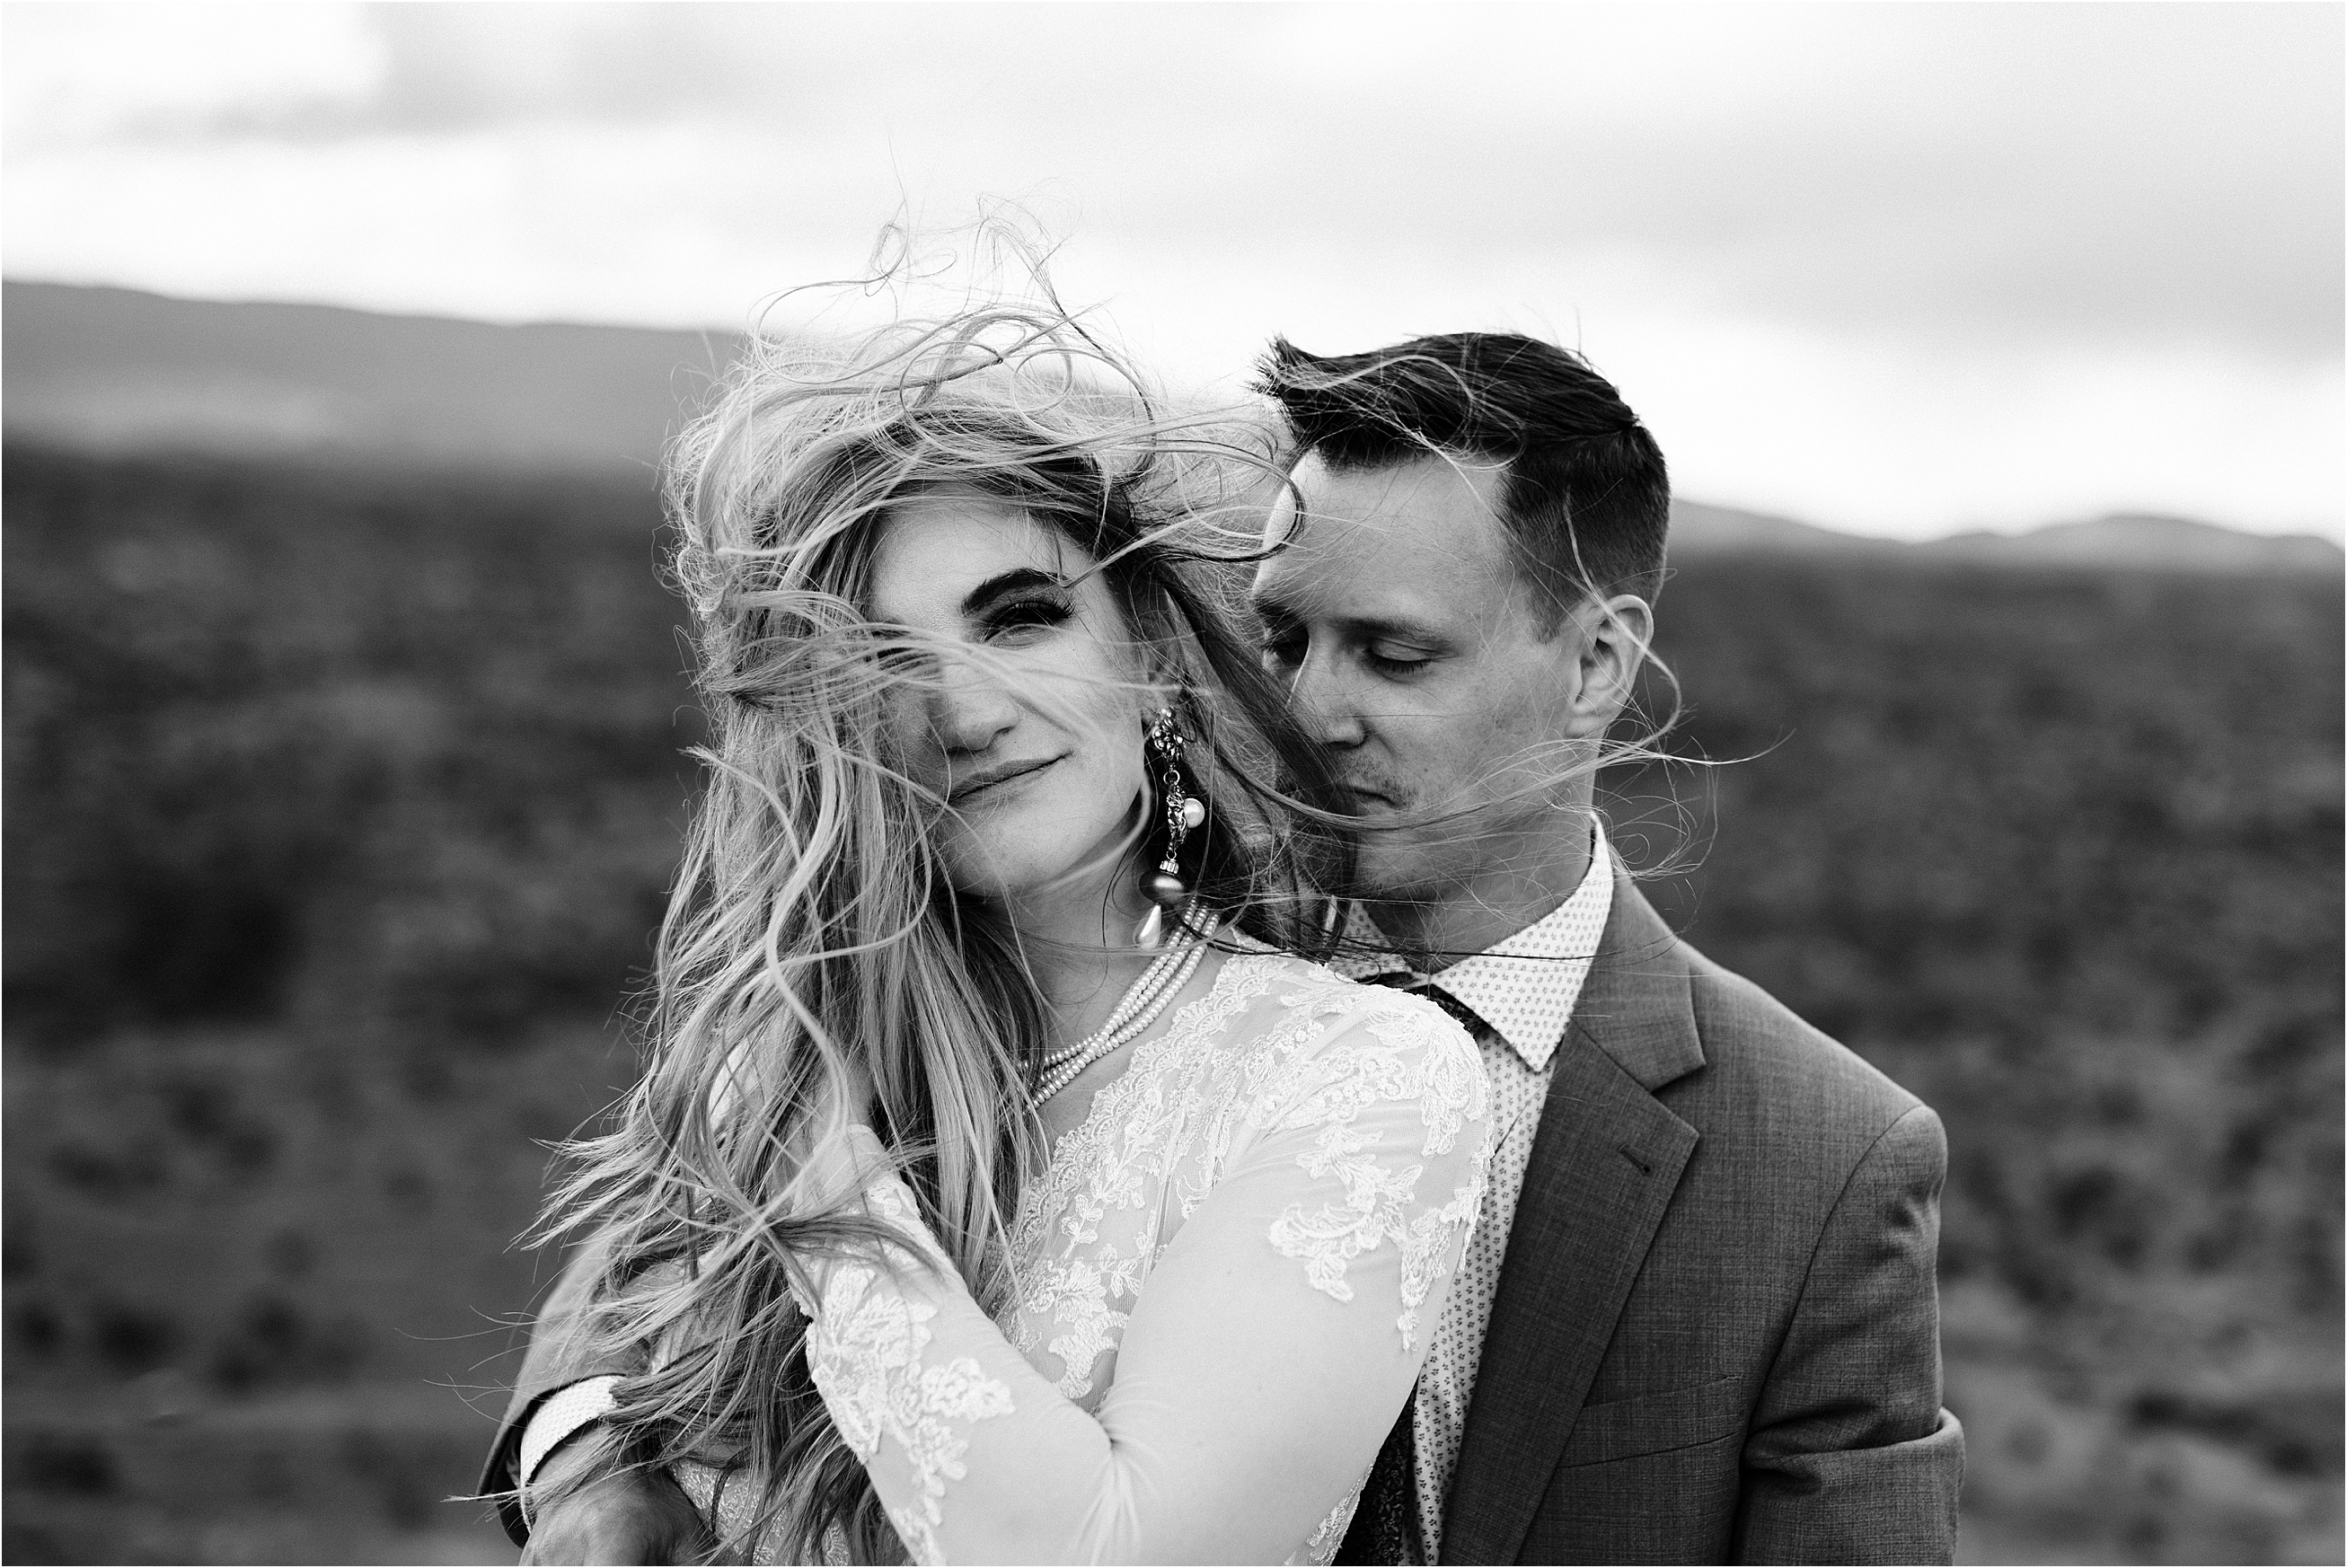 Close up wedding portrait of a bride with very wind blown hair. Image by Forthright Photo